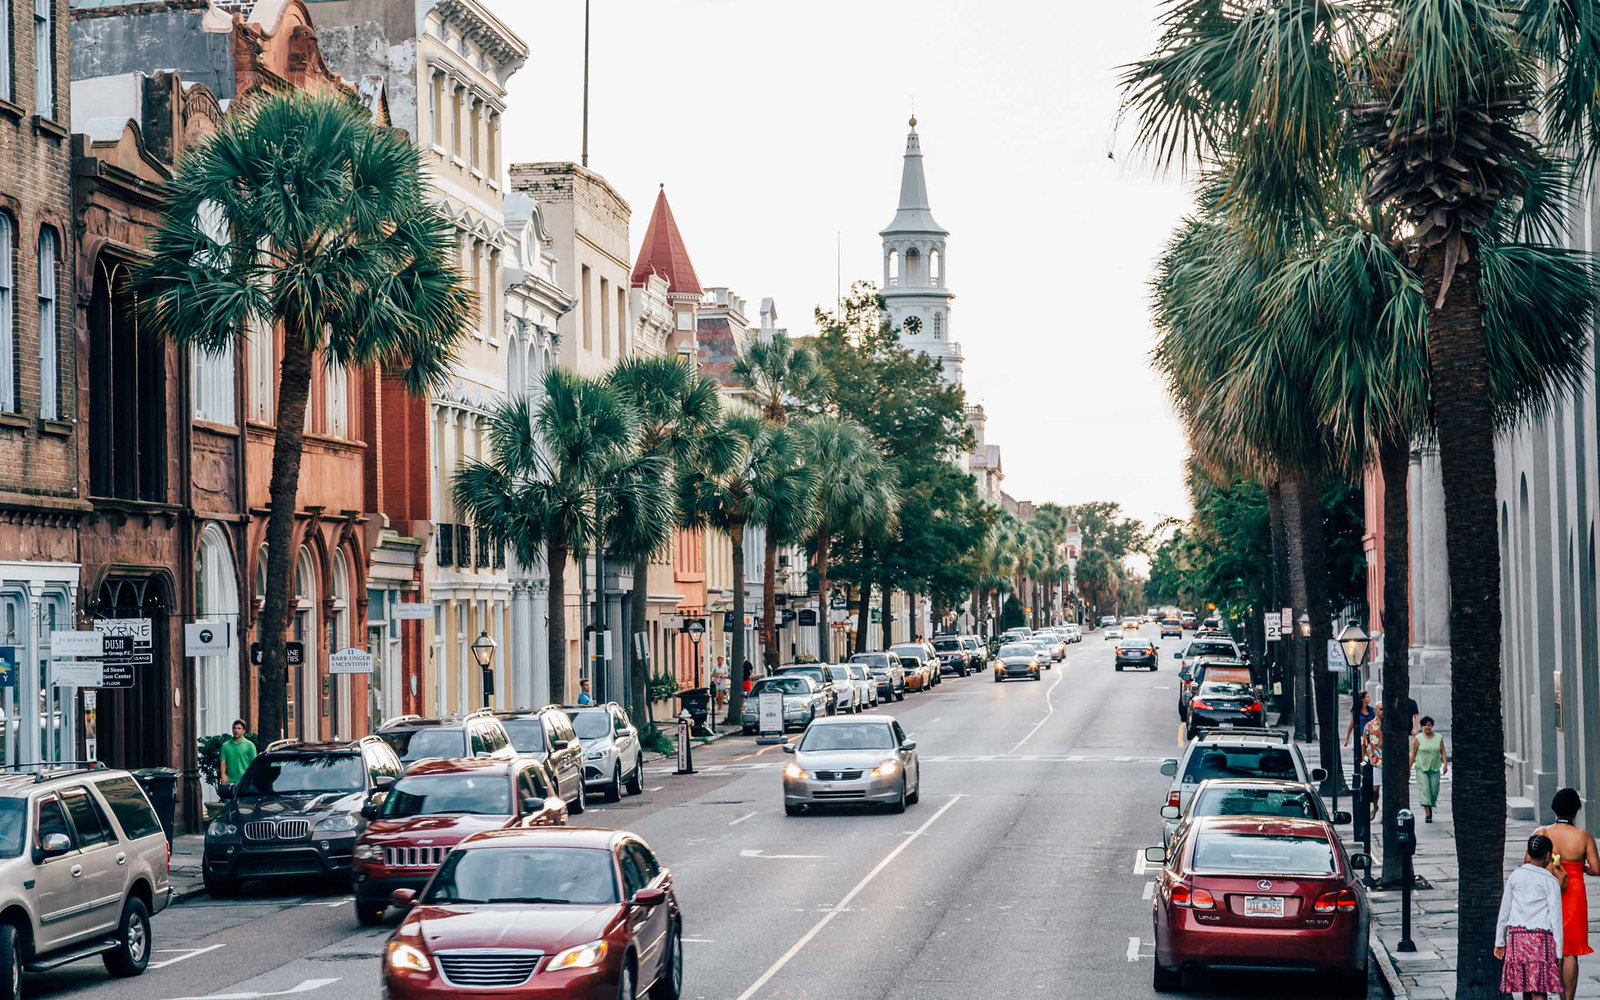 4. Charleston, South Carolina